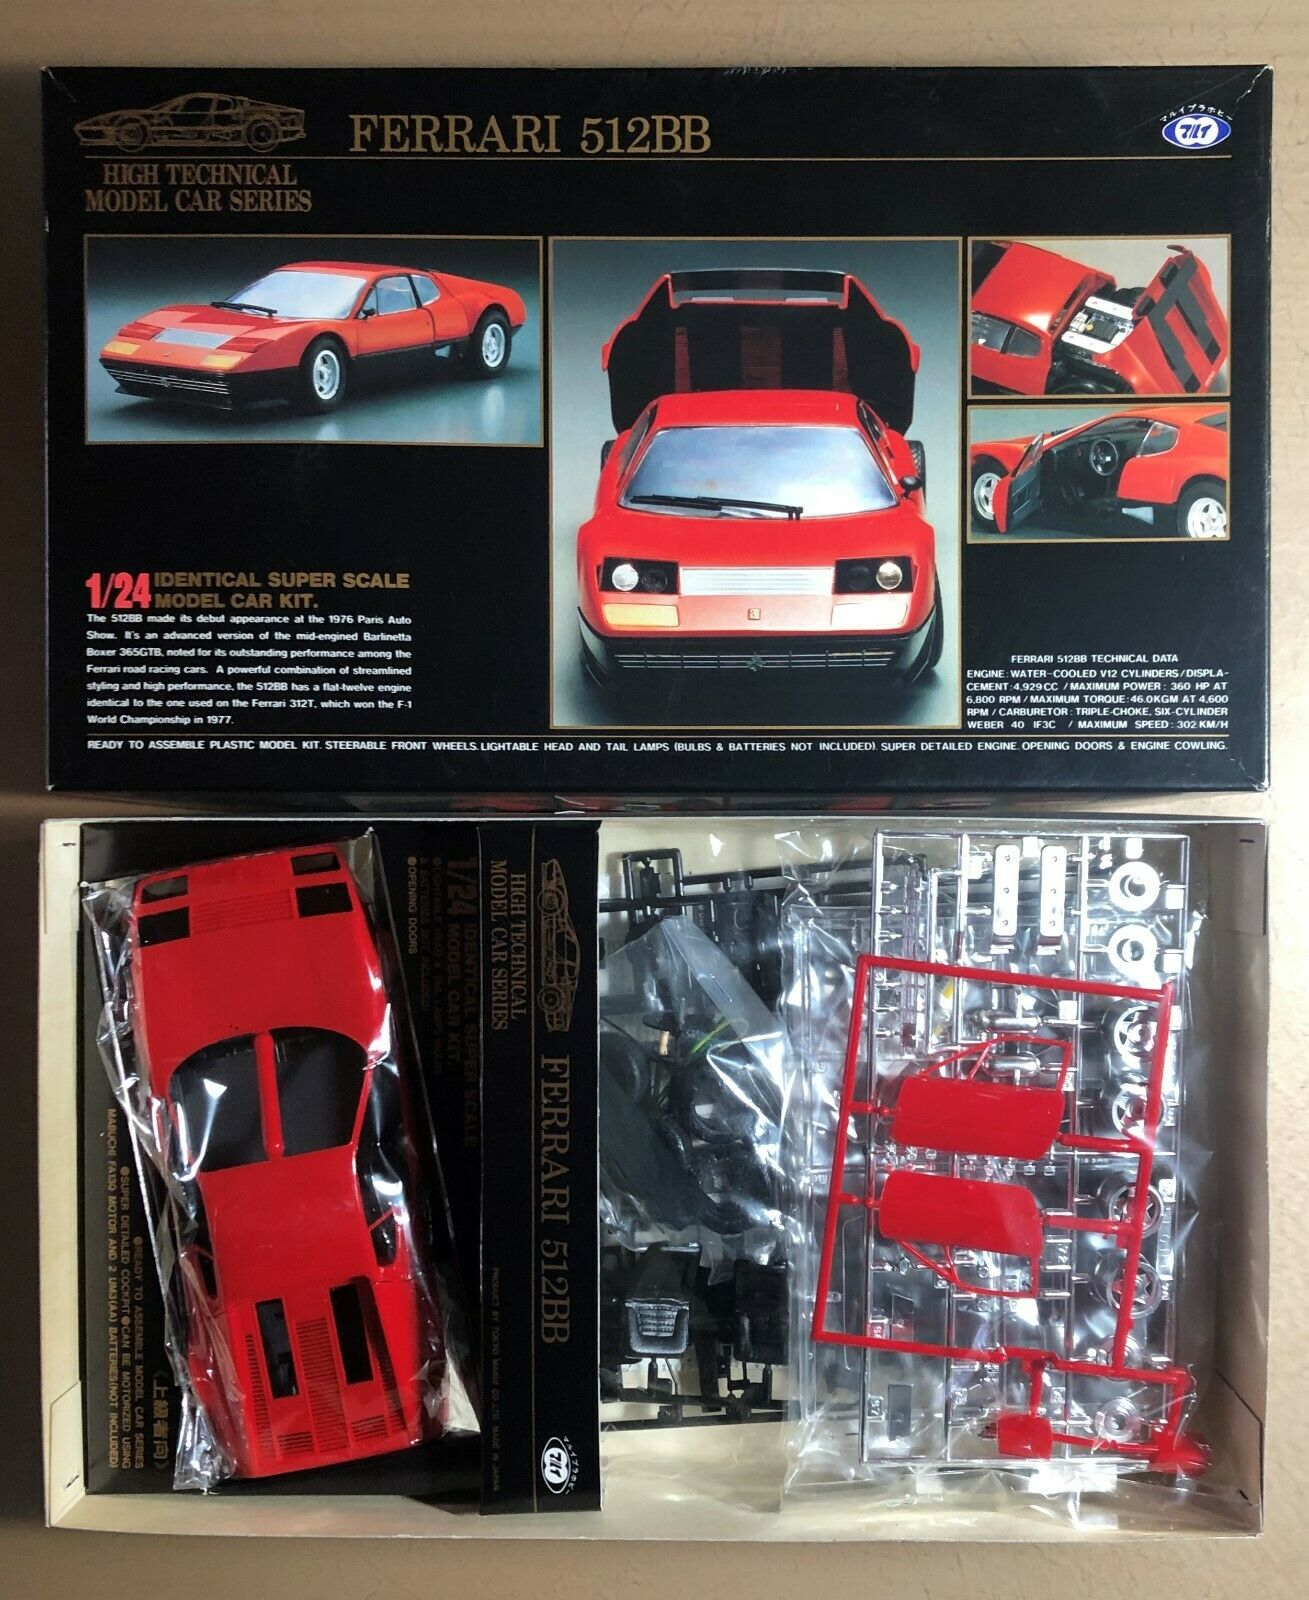 TOKIO MARUI MODEL TILT MT86-HT3-800 - FERRARI 512BB - 1 24 PLASTIC KIT